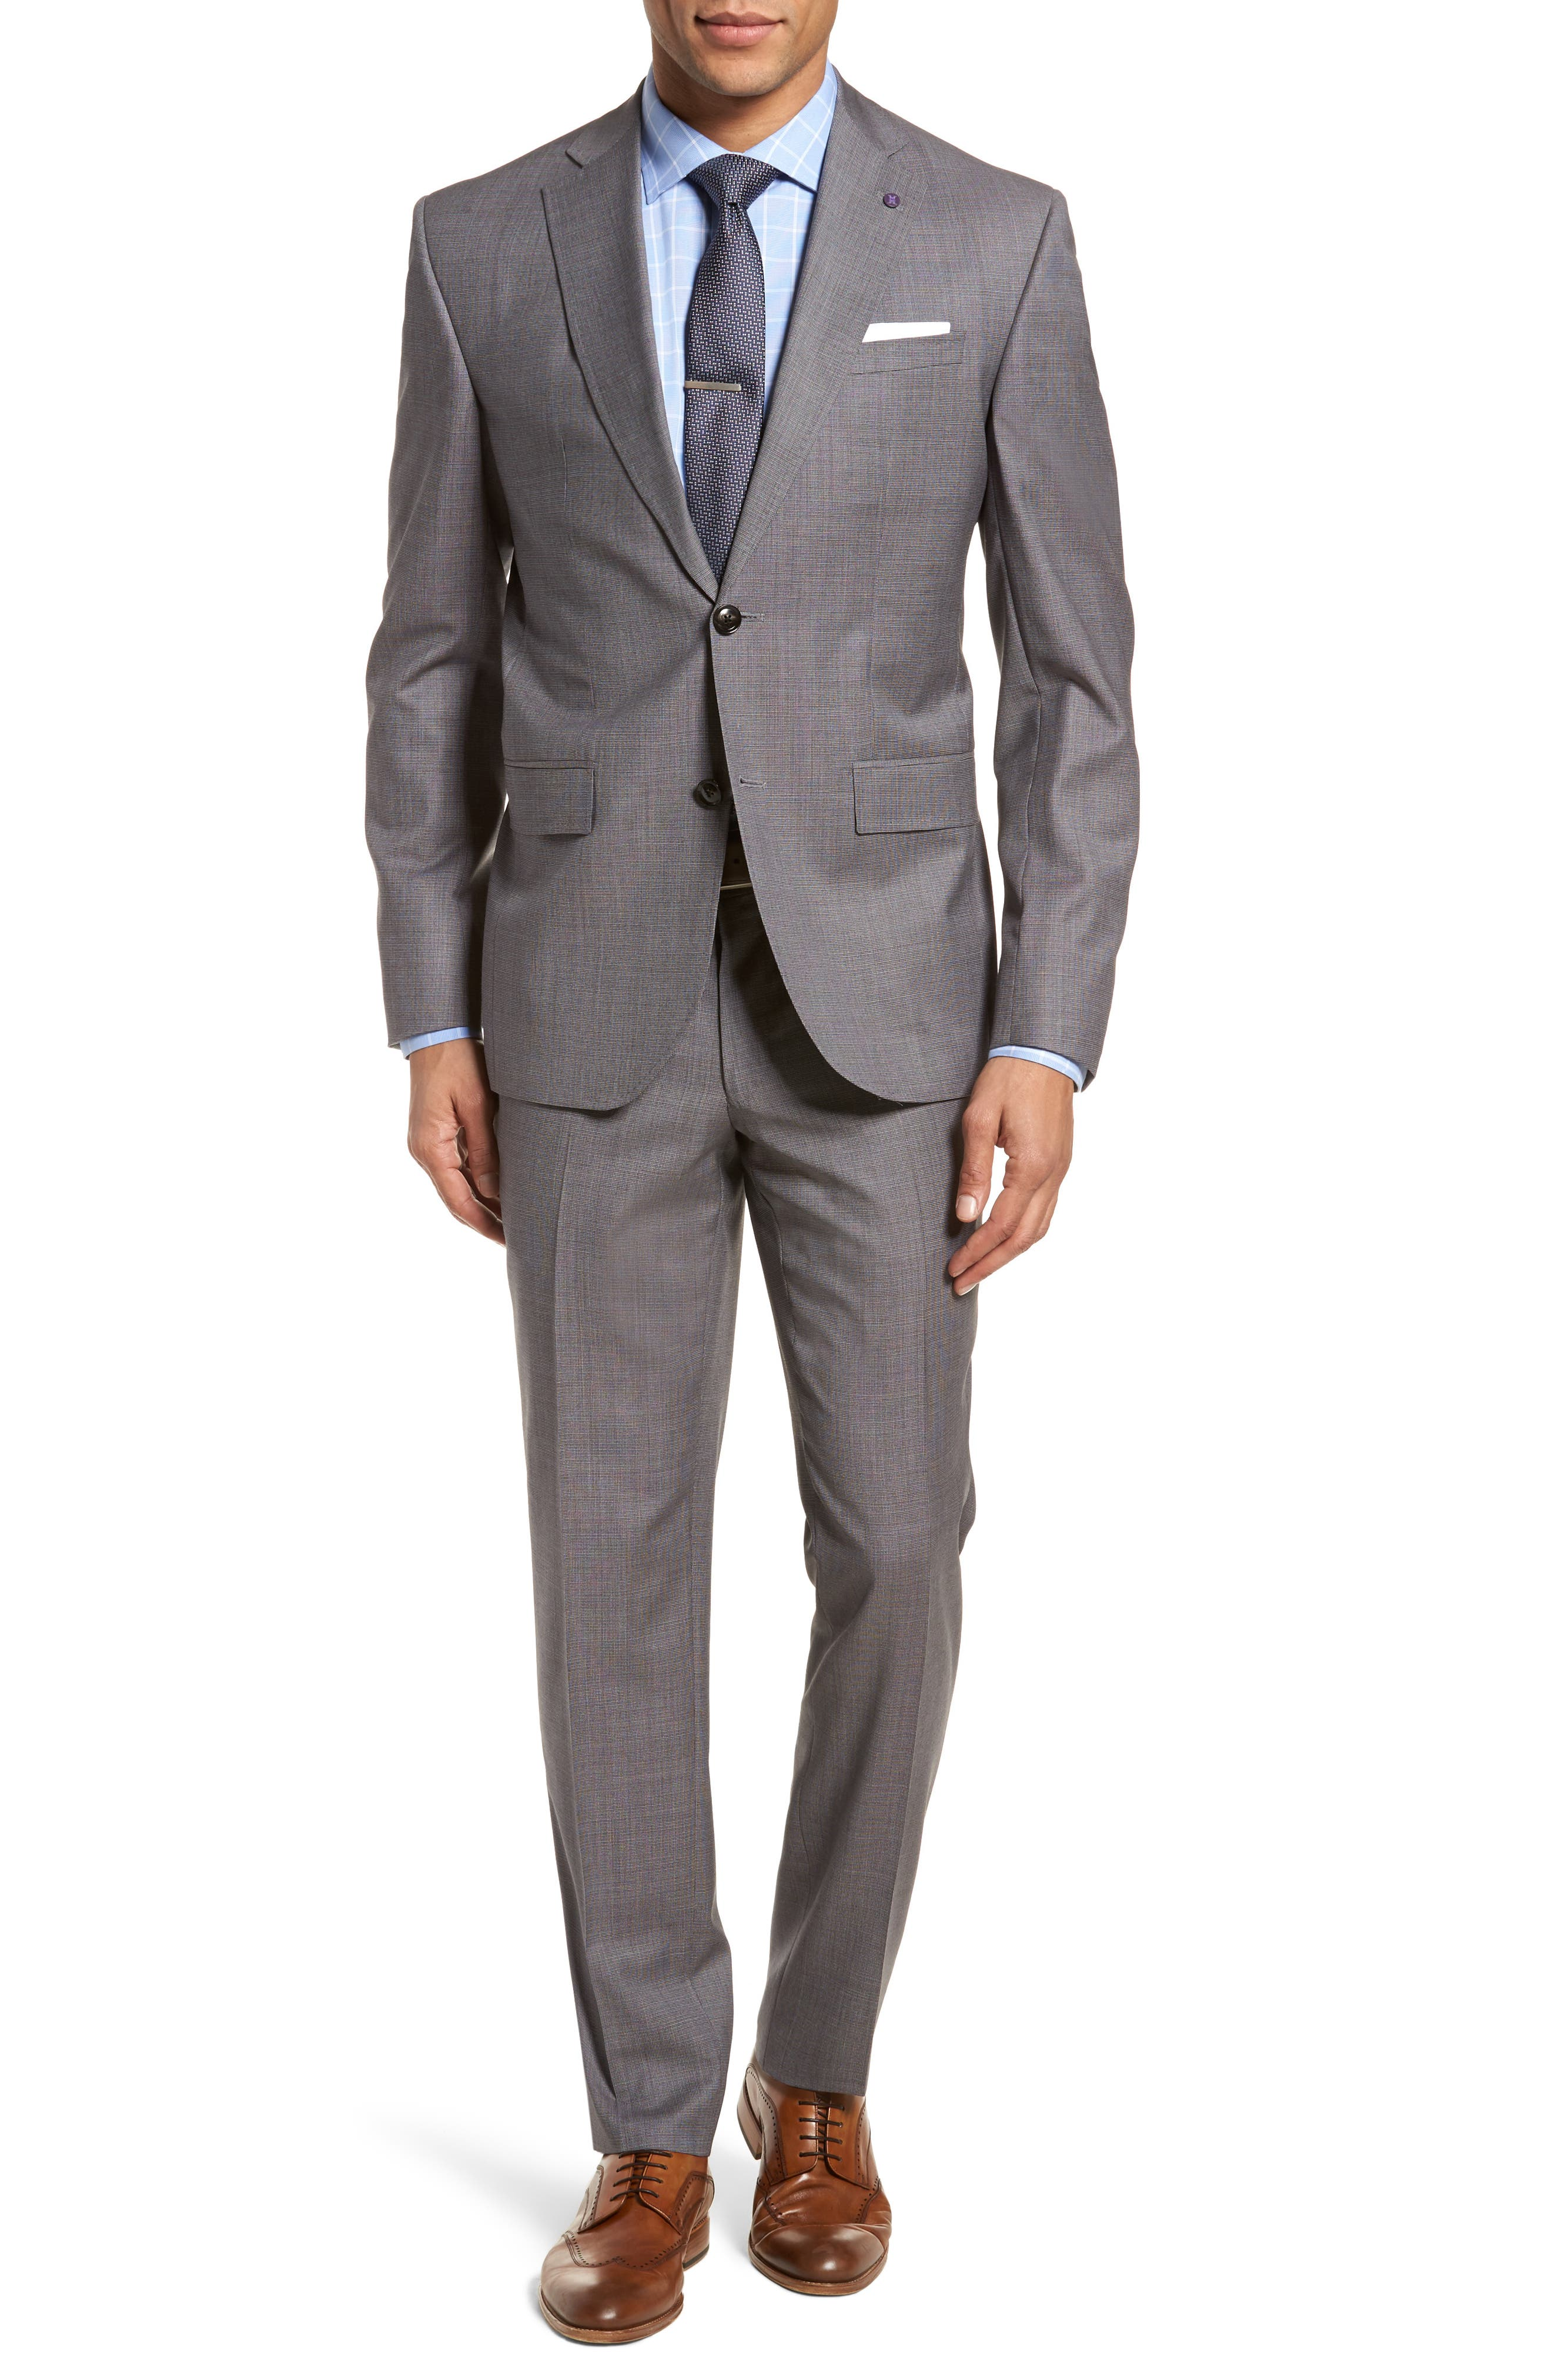 Roger Extra Slim Fit Solid Wool Suit,                         Main,                         color, Taupe